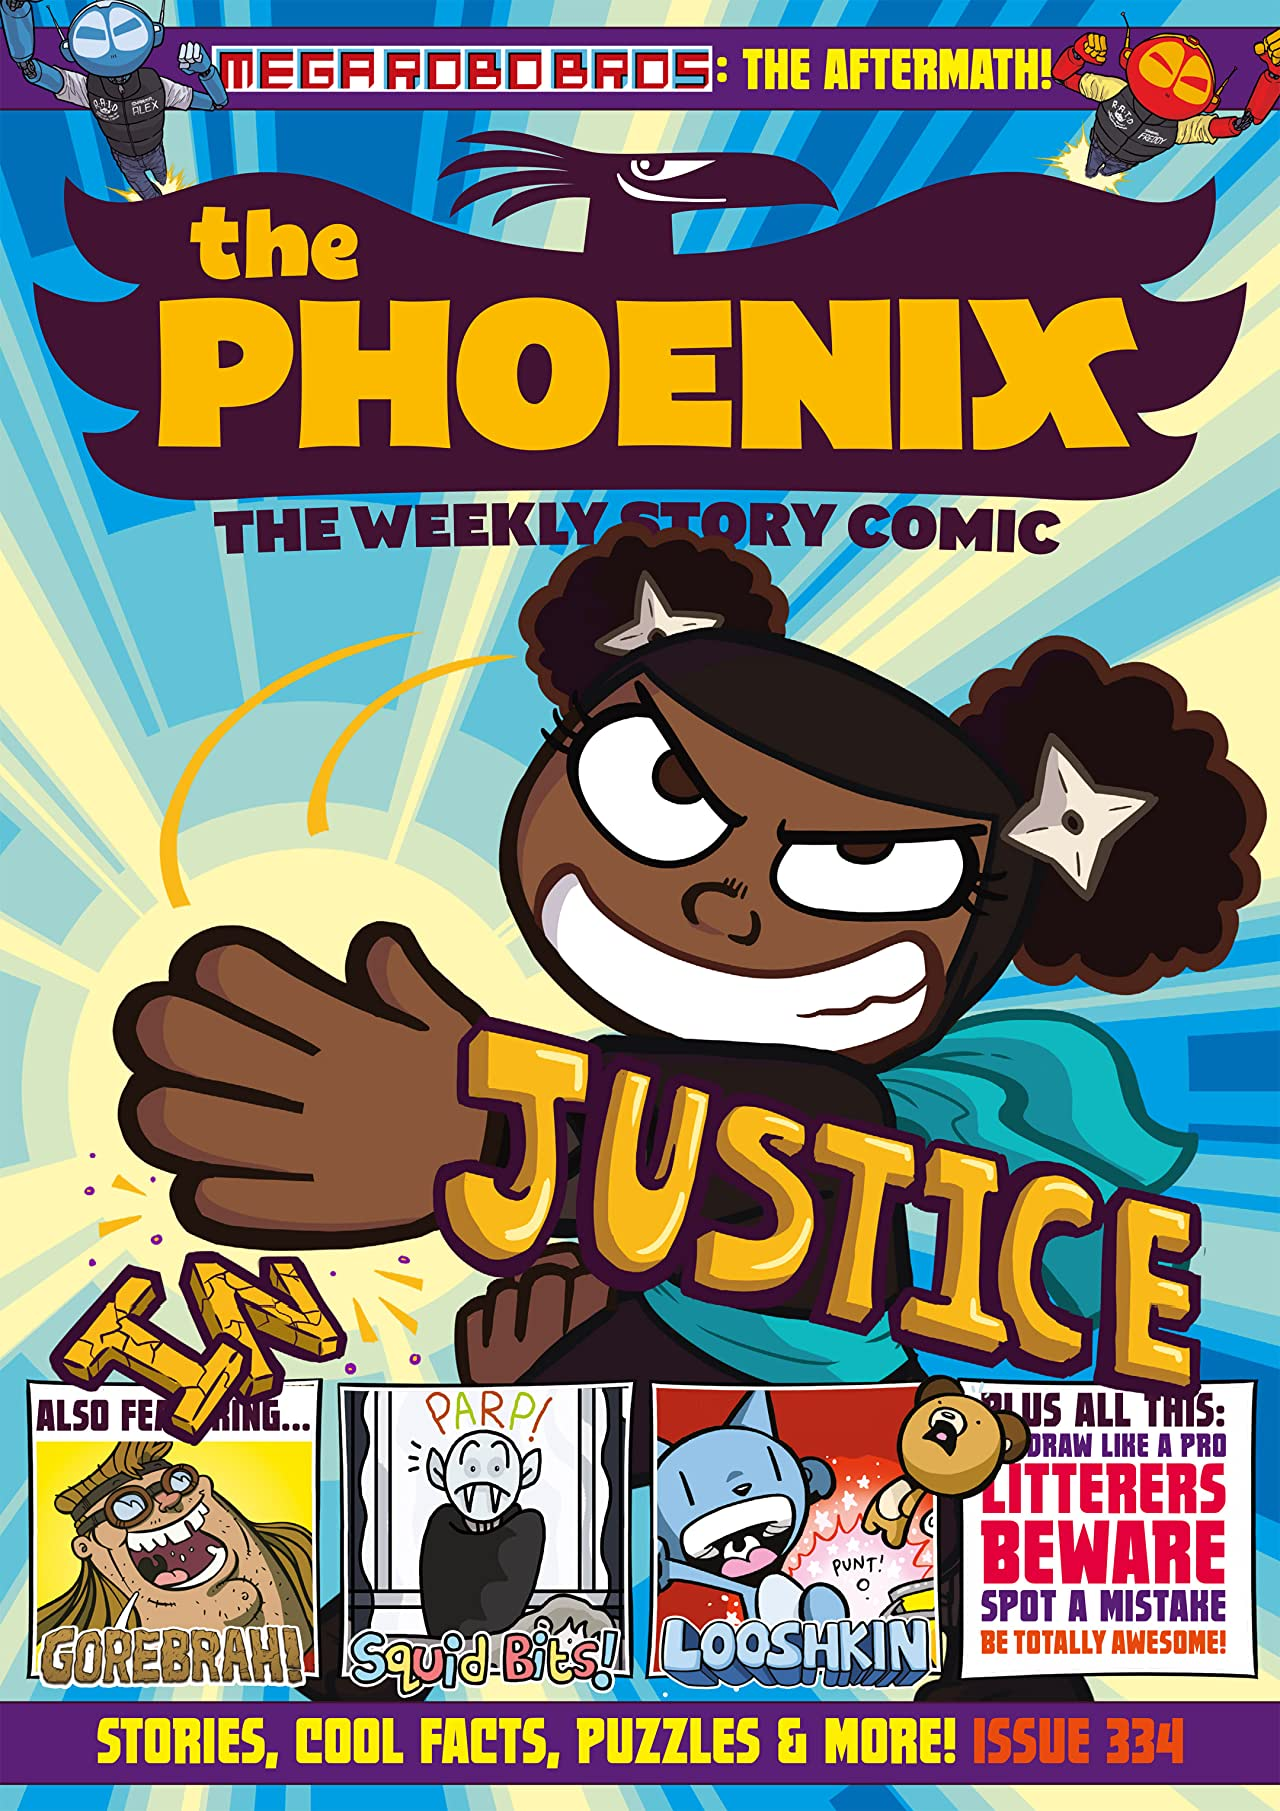 The Phoenix #334: The Weekly Story Comic